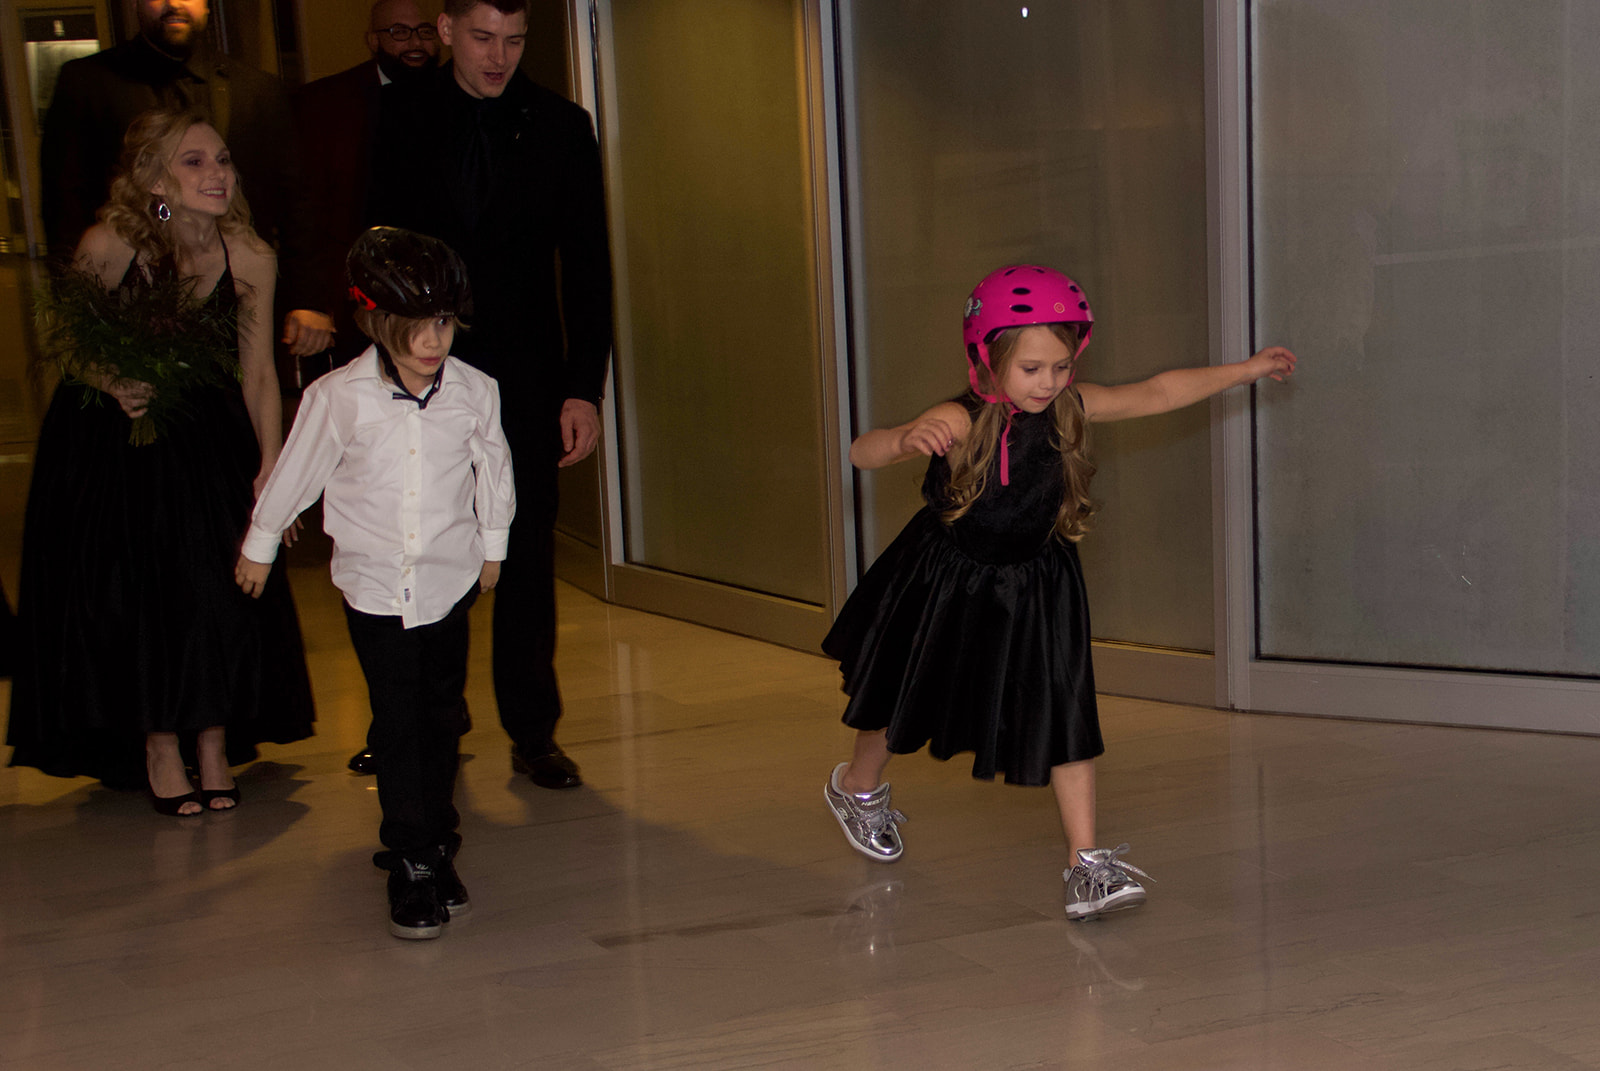 Really fun bridal introductions for the ring bearer and flower girl is to have them come in on wheelies to Chamillionaire - Pearl Weddings & Events